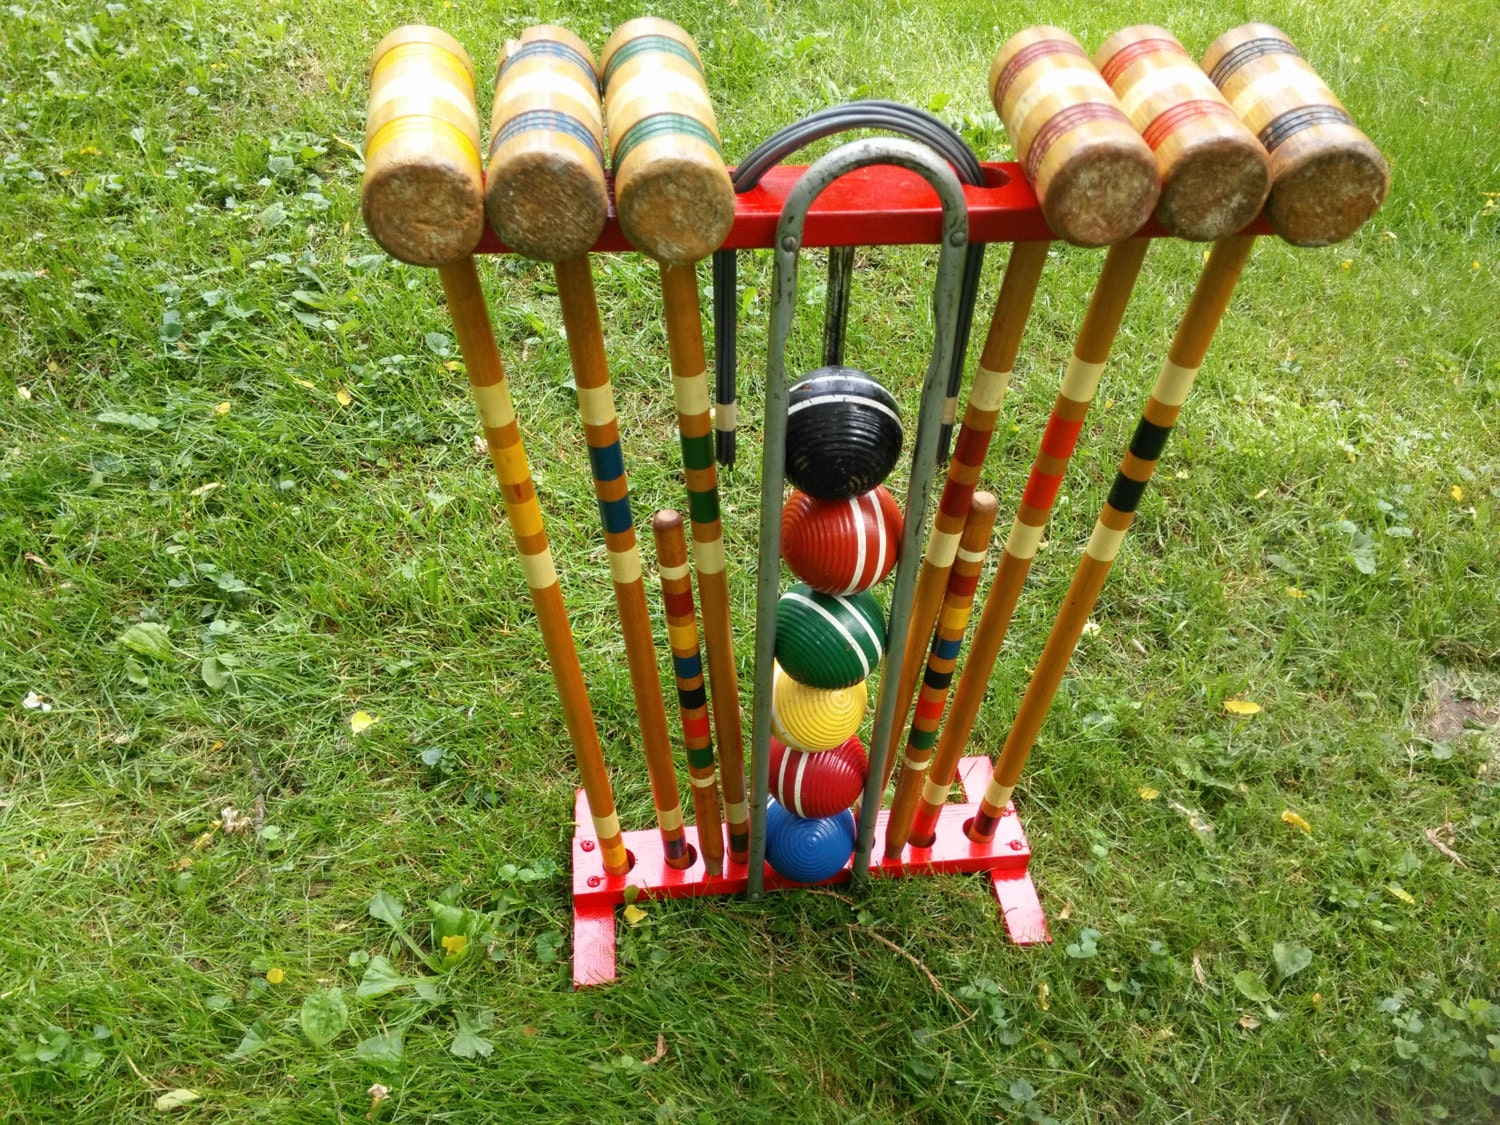 Vintage Six Player Wood Croquet Set With Red Wood Holder